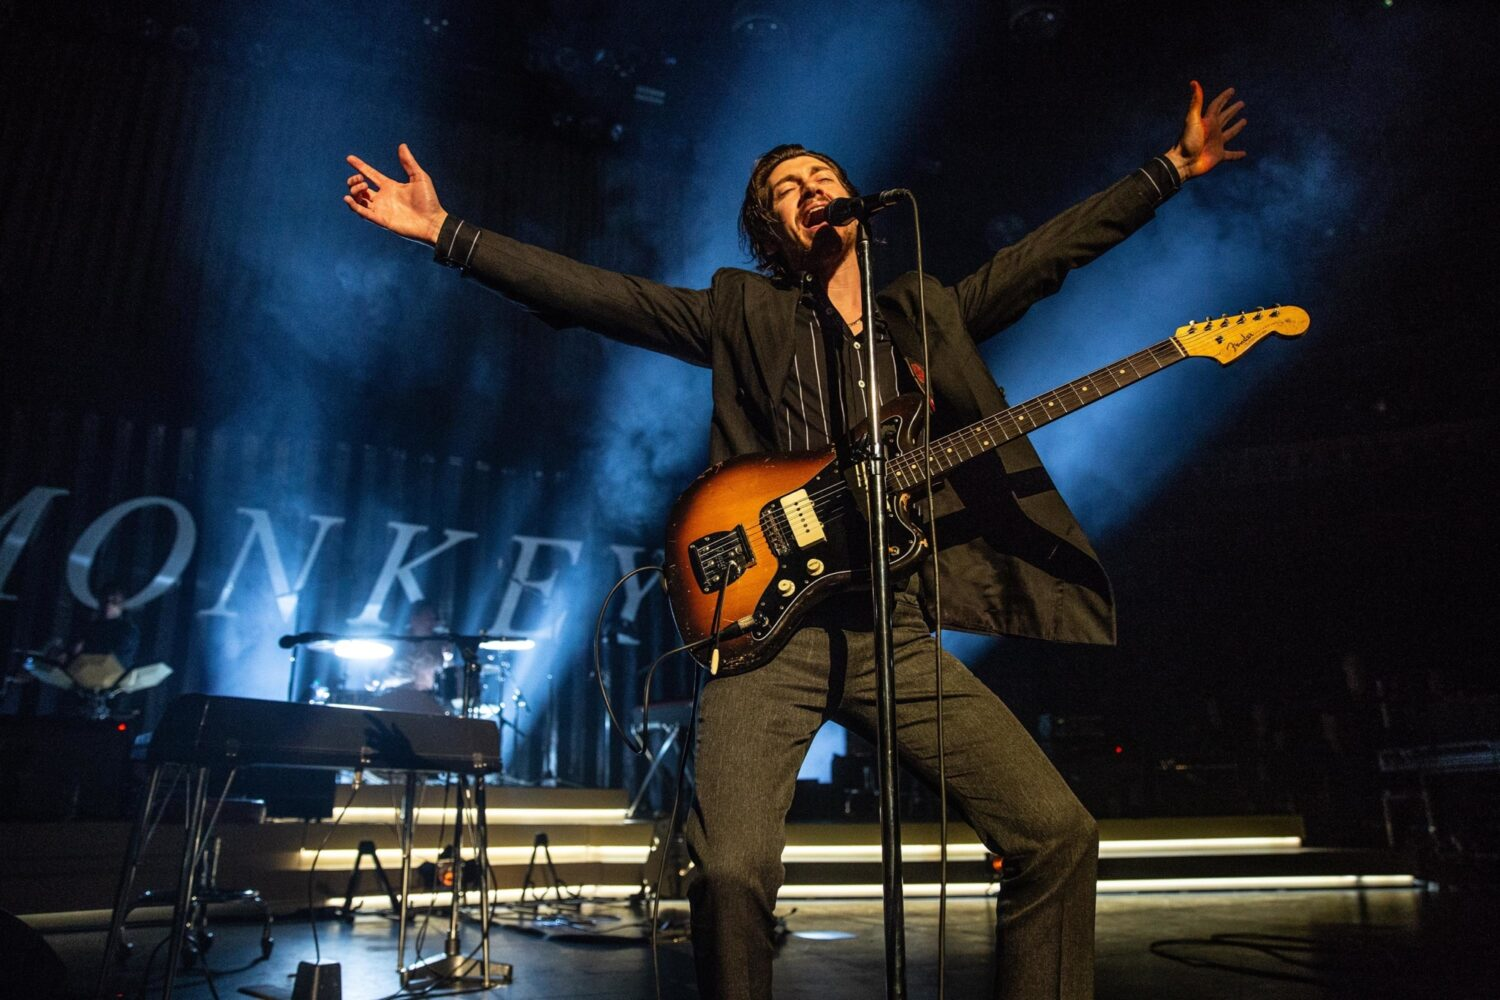 Arctic Monkeys unleash live video of 'Arabella'